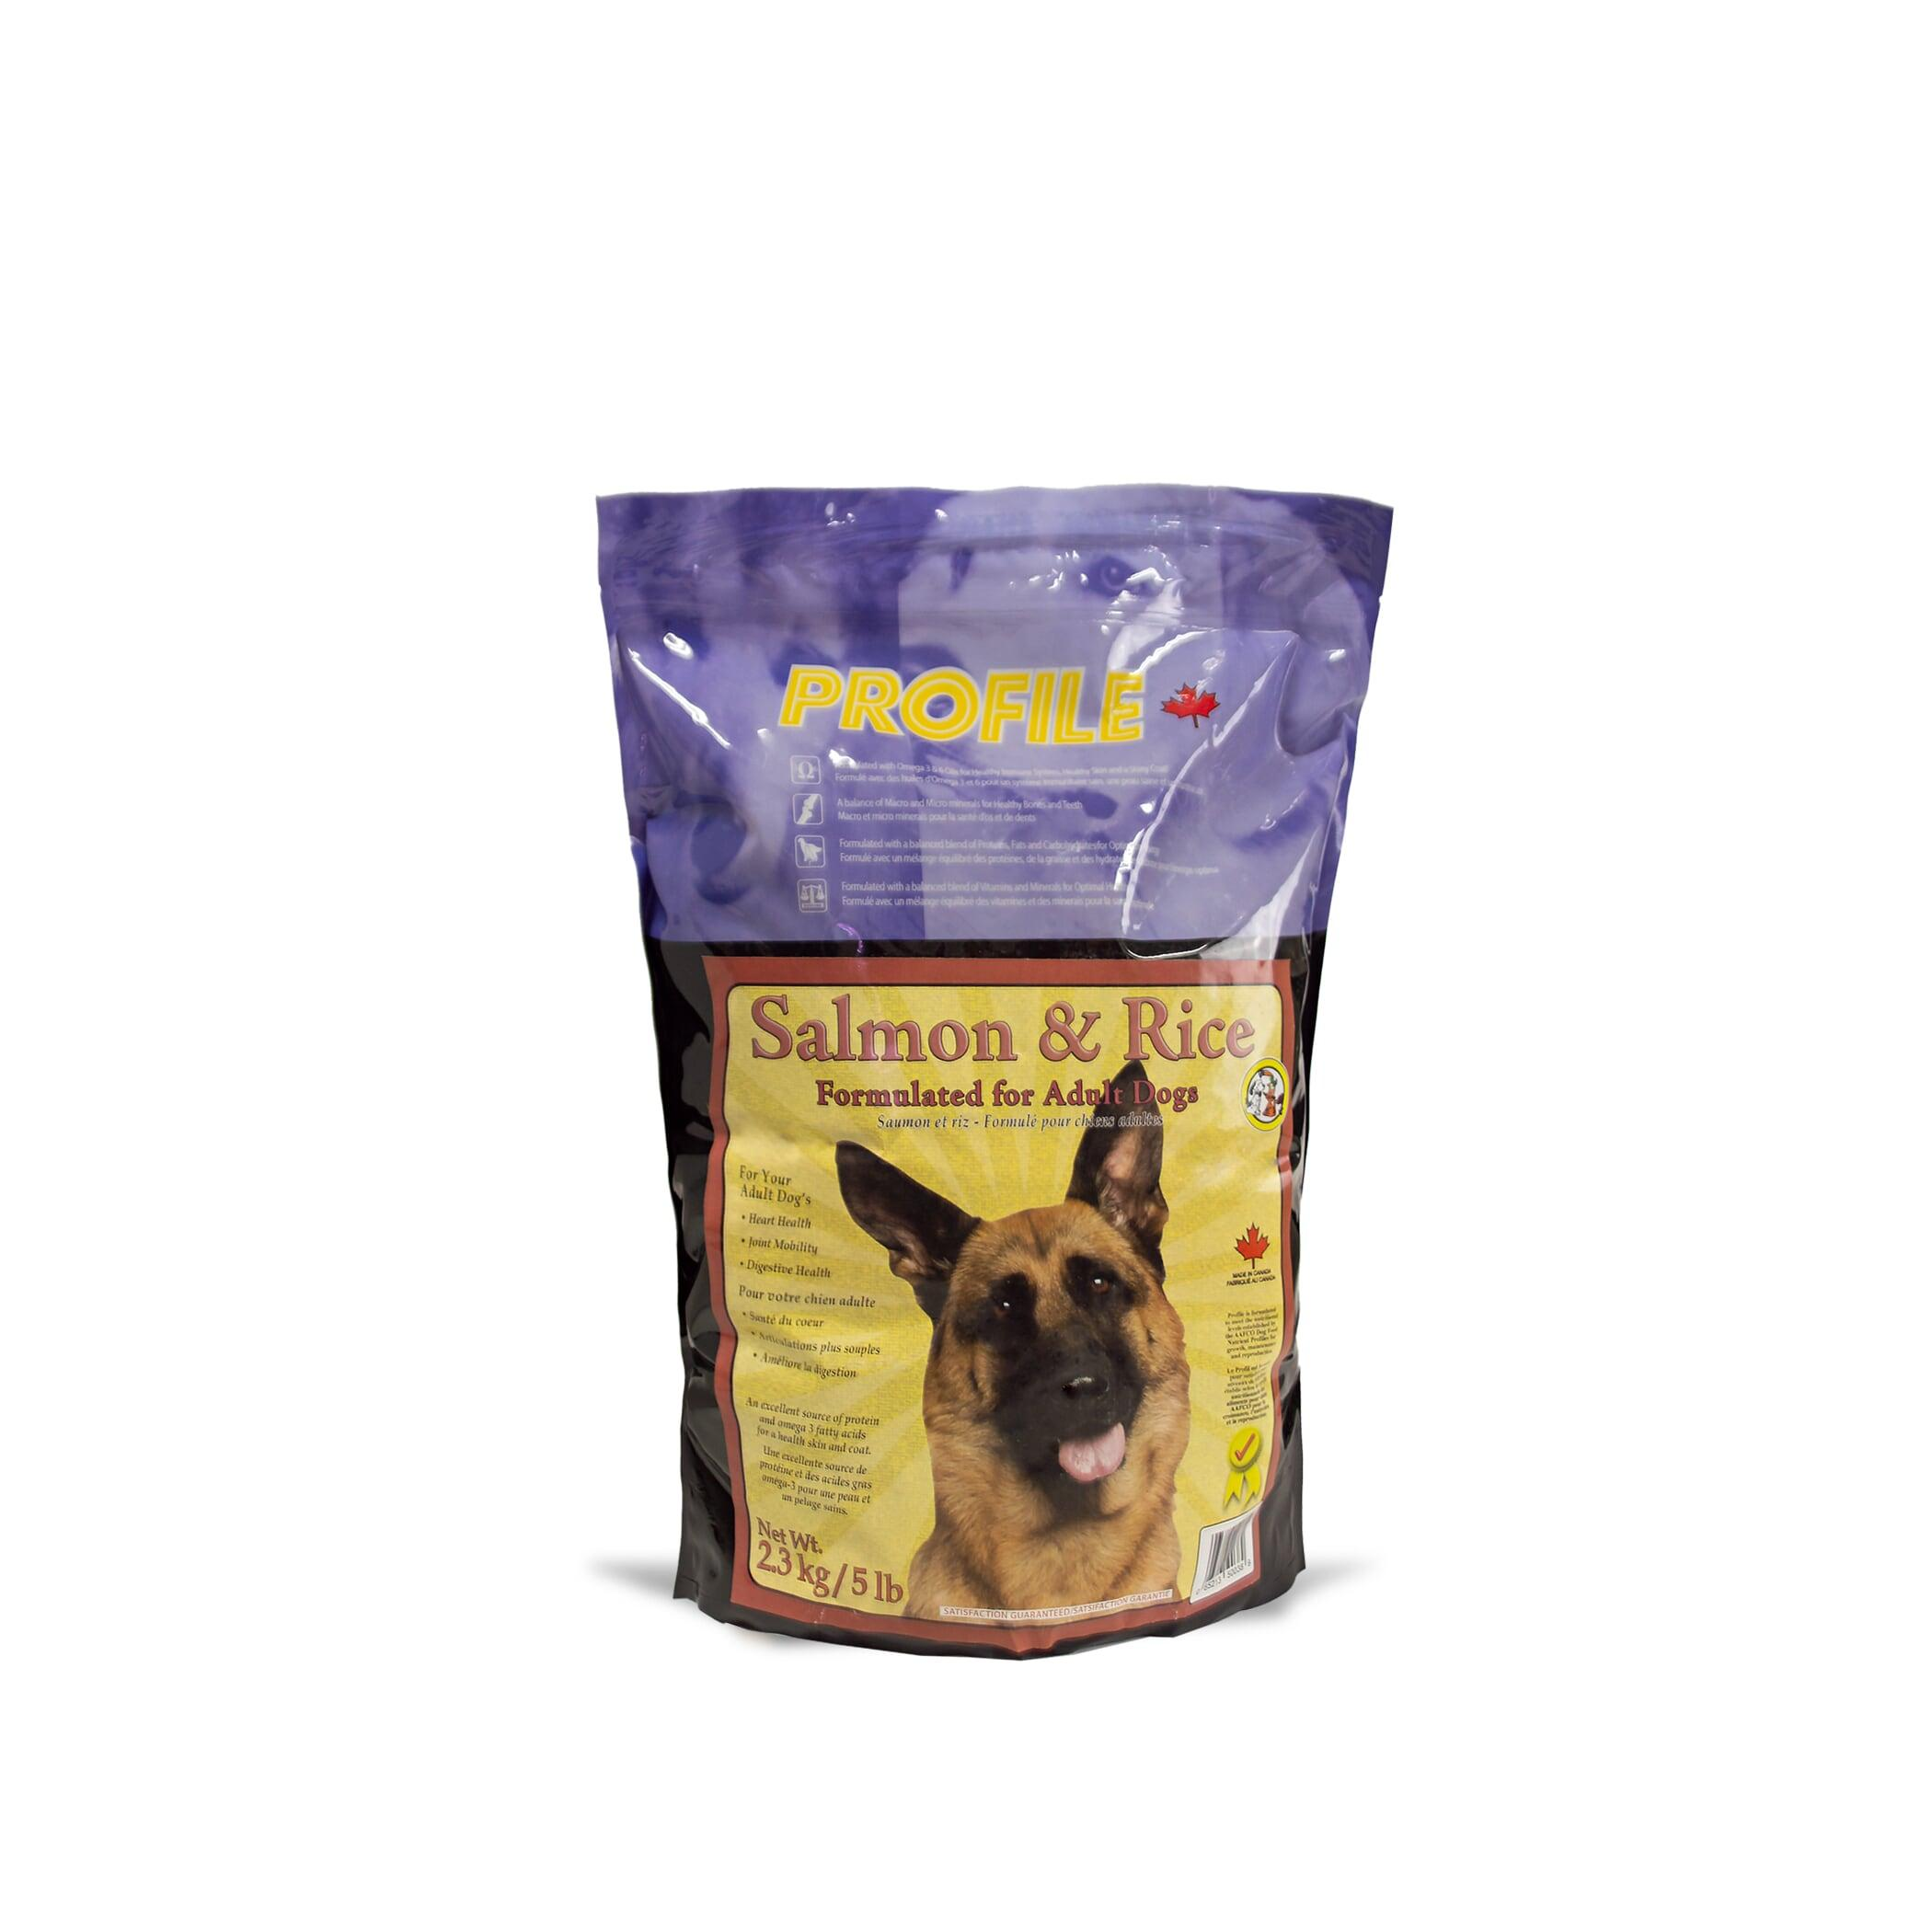 Profile Salmon & Rice Dry Dog Food, 2.3-kg